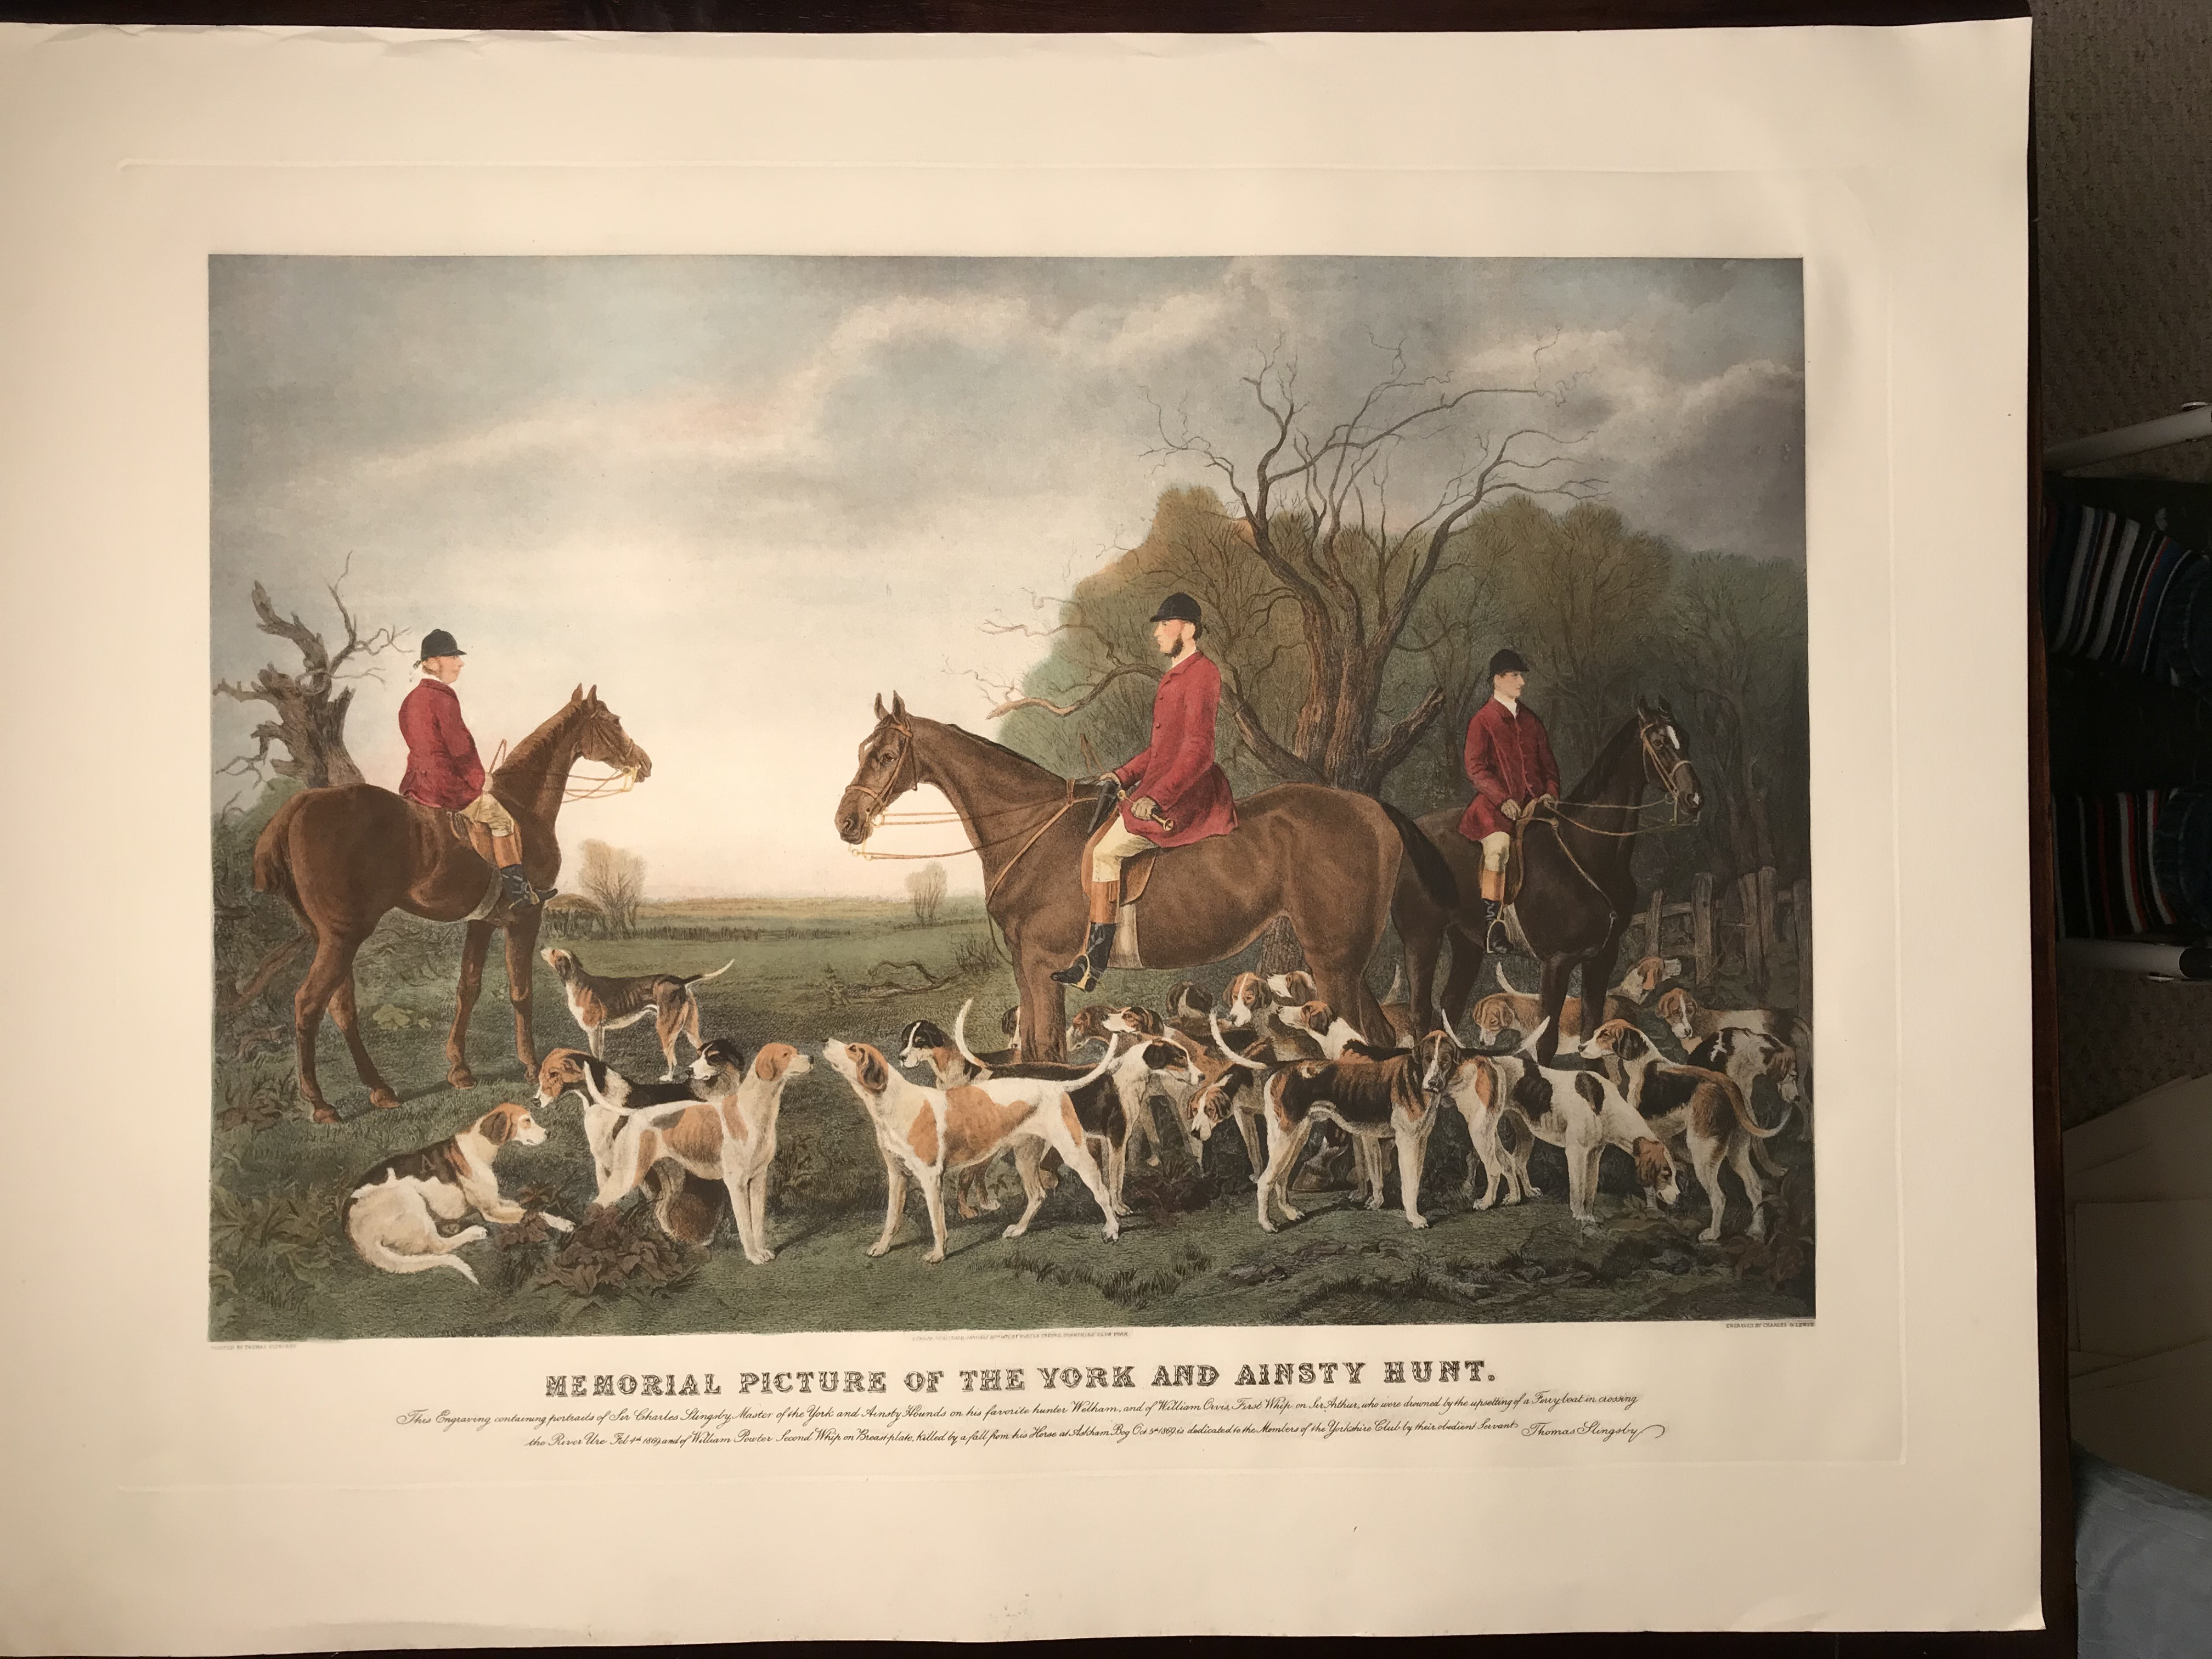 Memorial Picture of the York and Ainsty Hunt